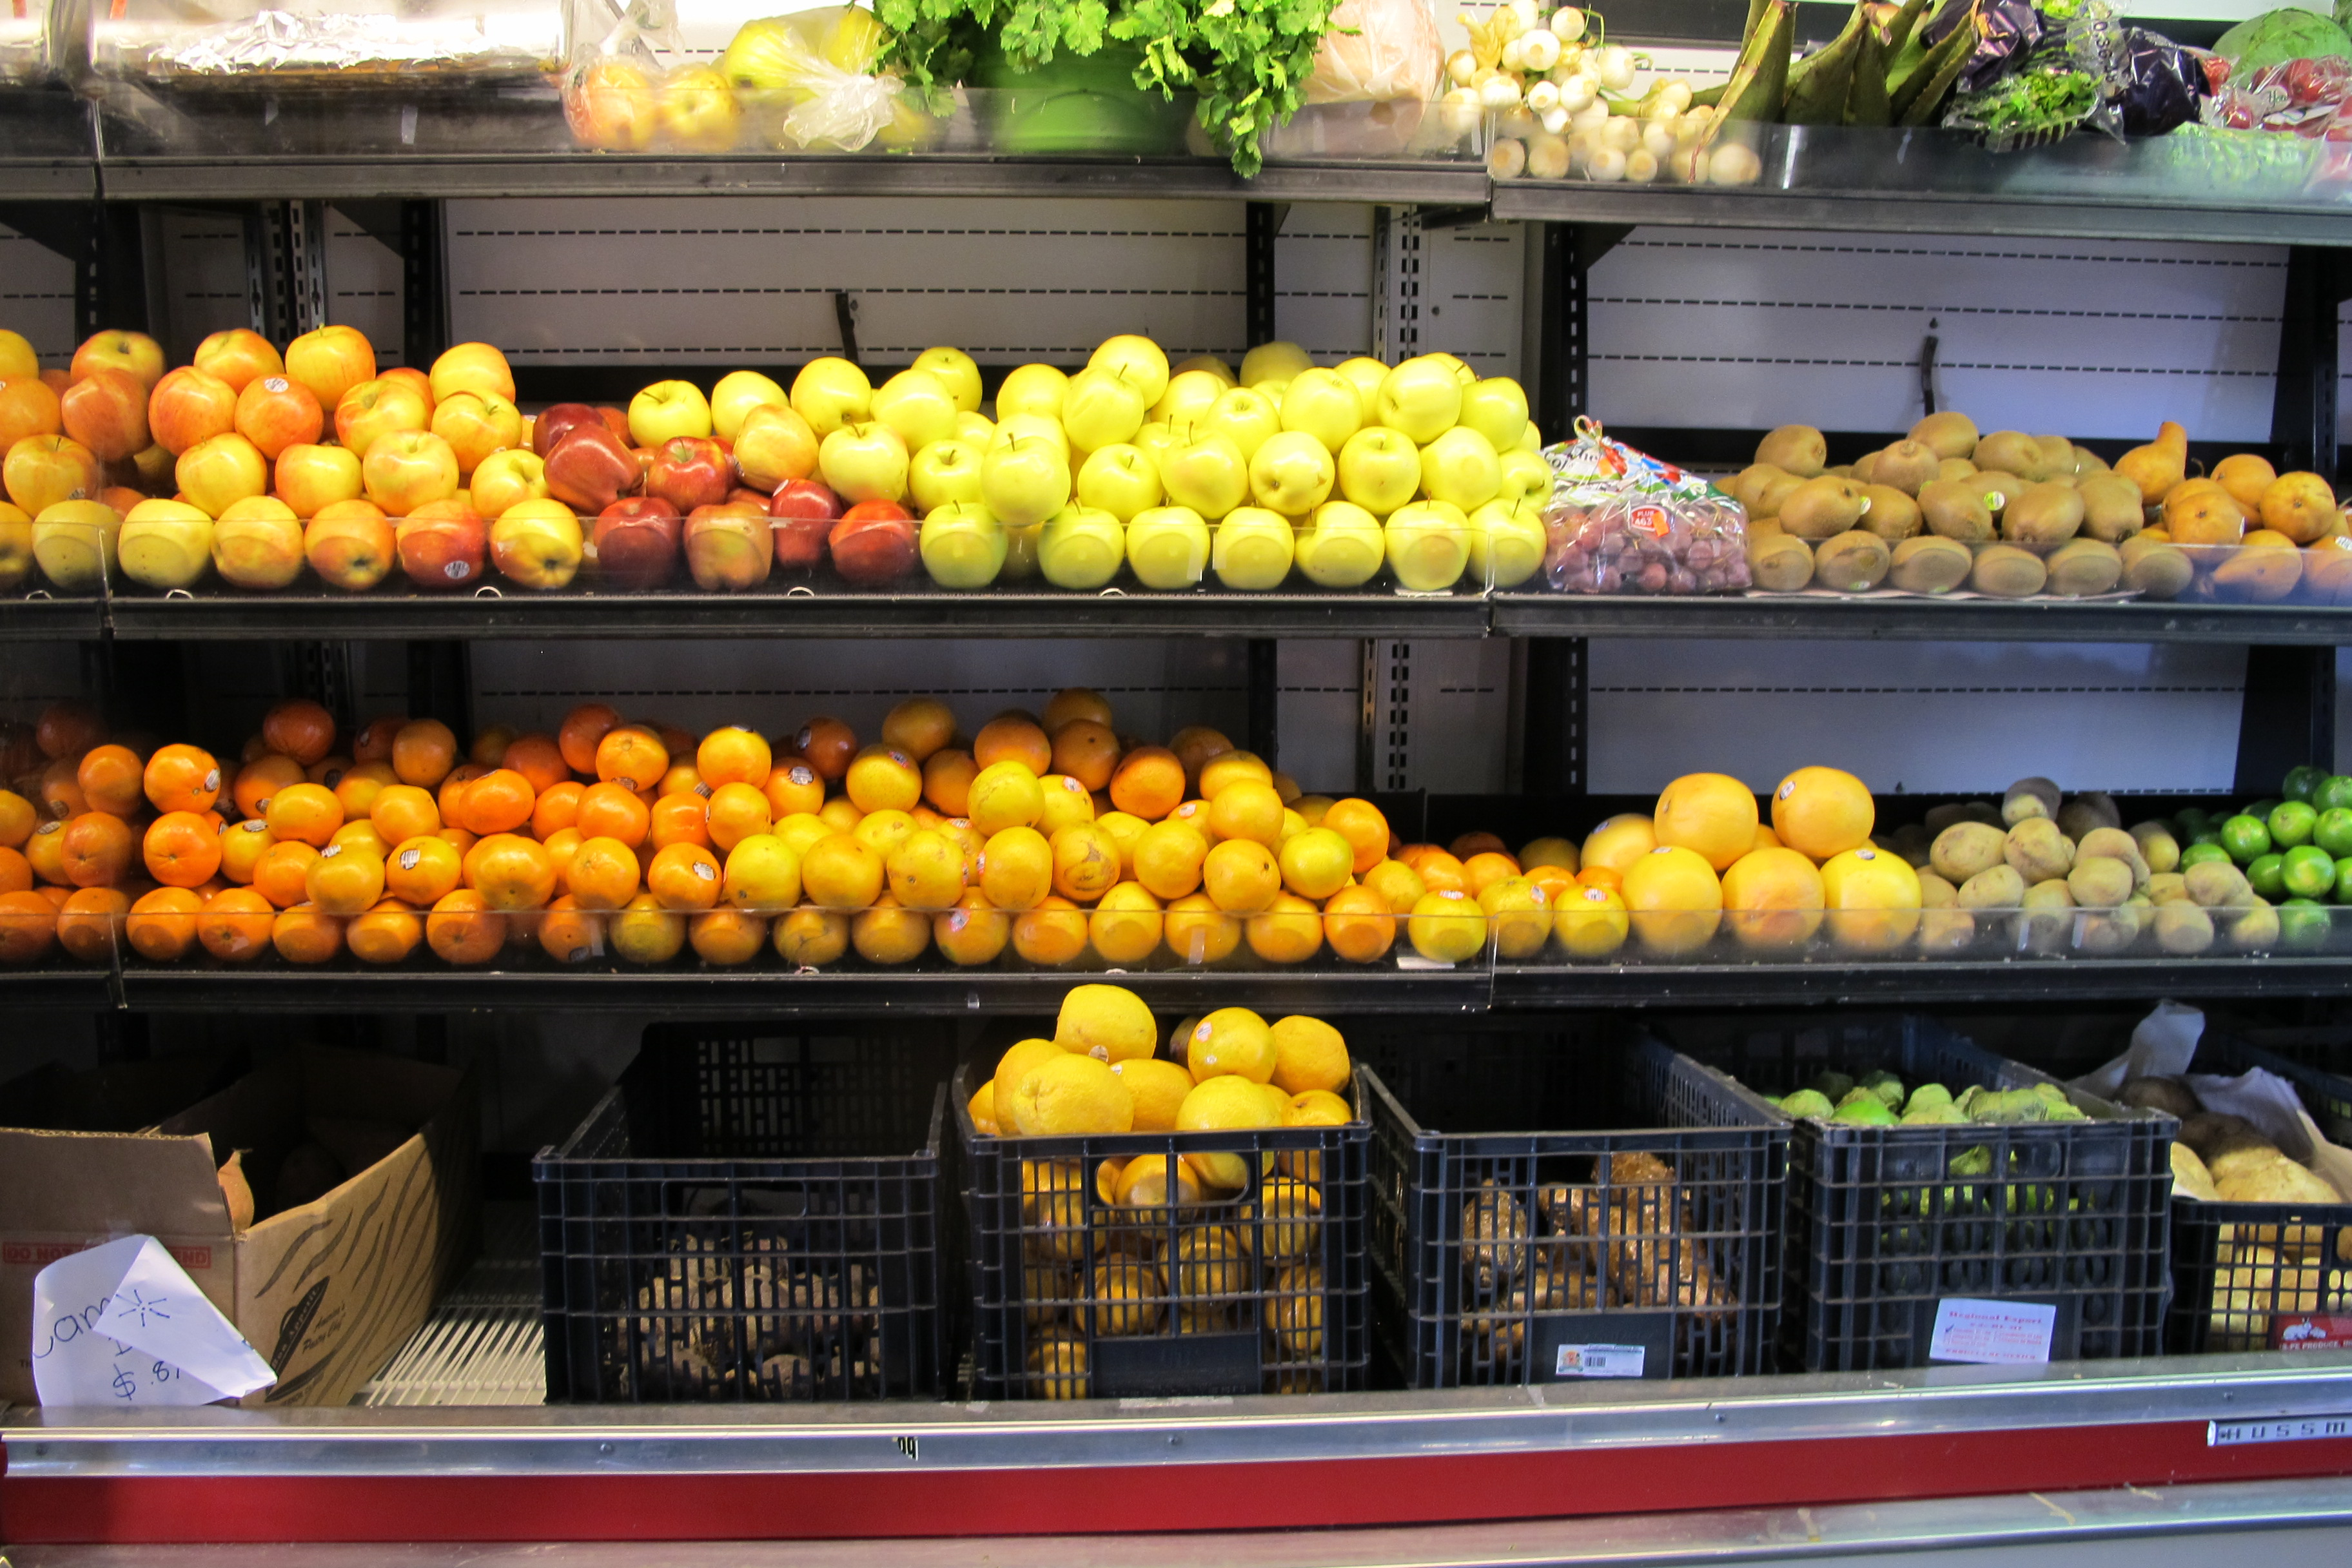 More Progress in MA: $6M Authorized for the Massachusetts Food Trust